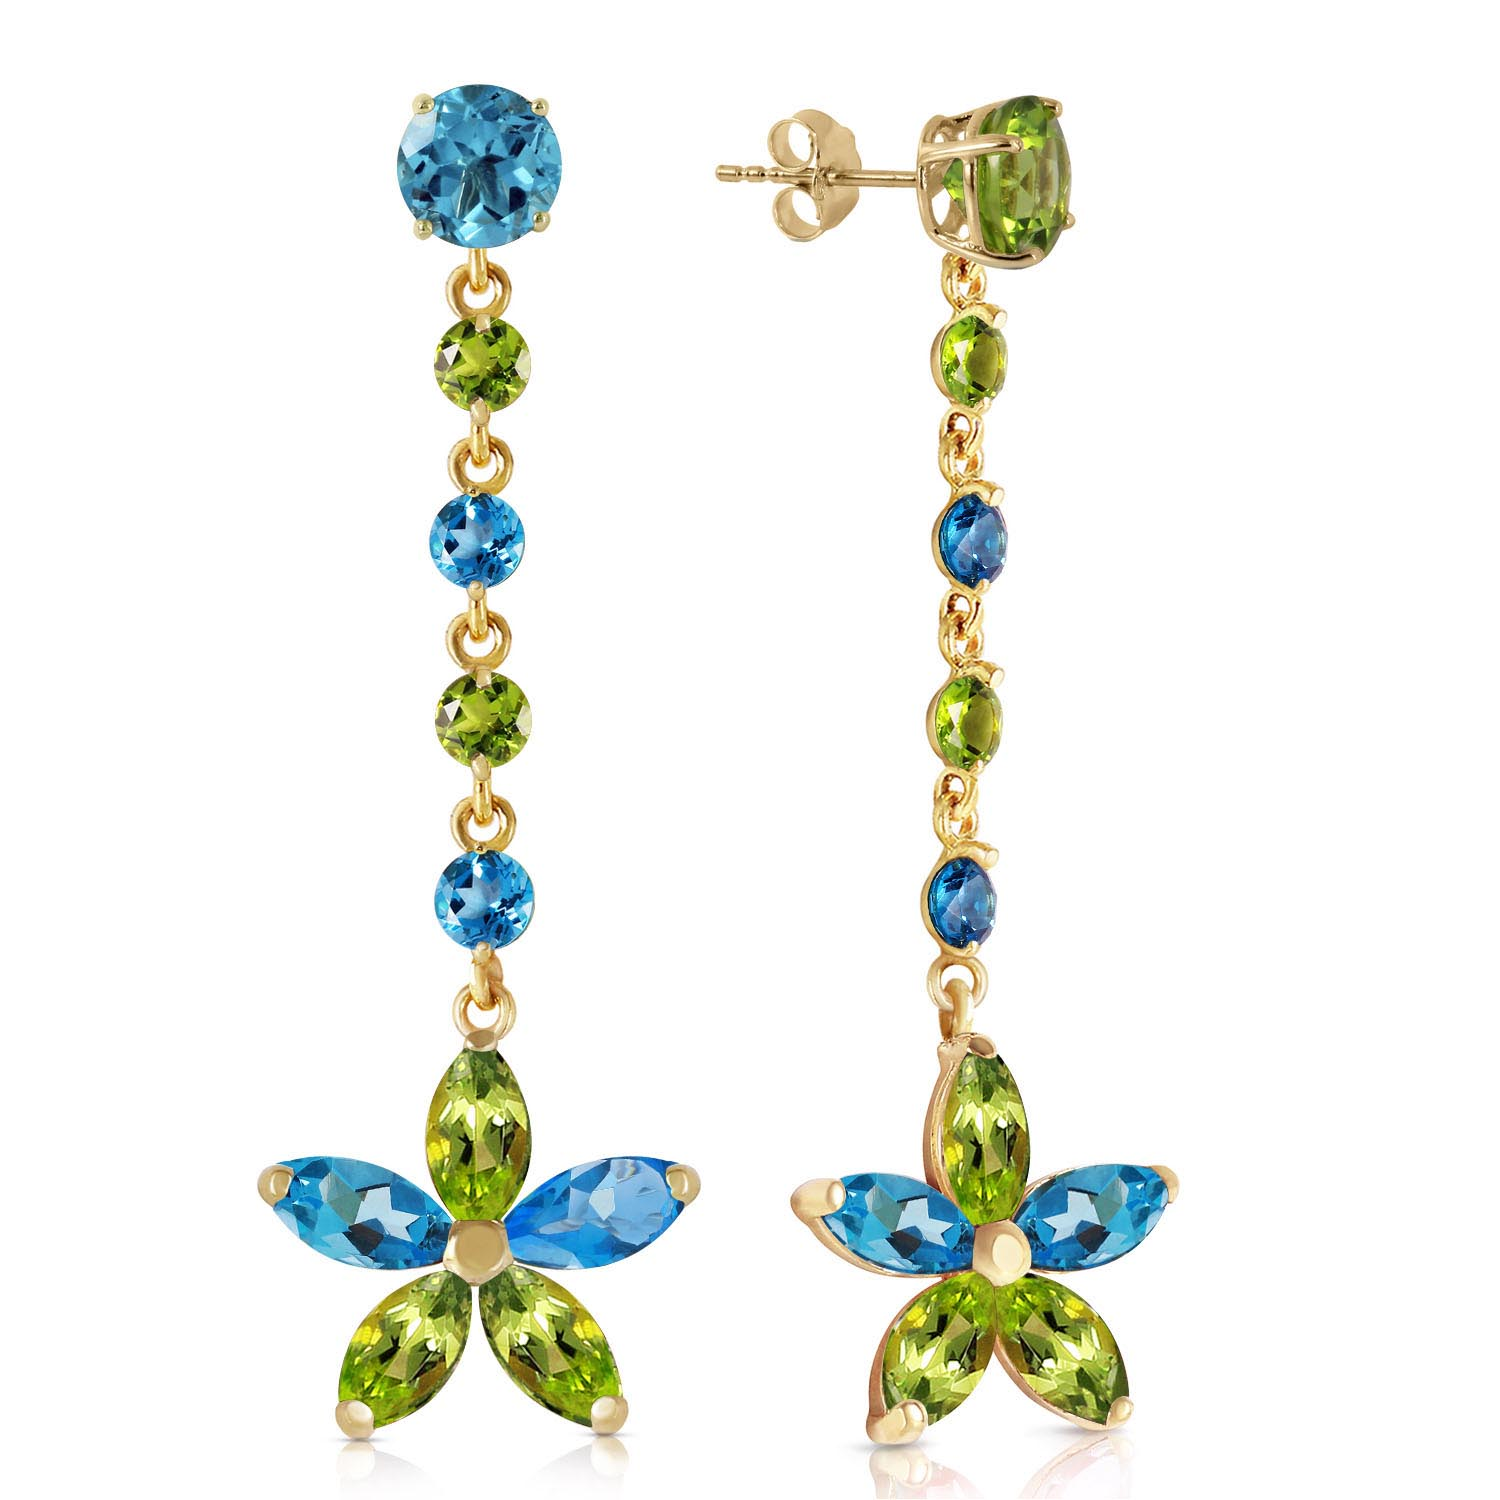 Blue Topaz & Peridot Daisy Chain Drop Earrings in 9ct Gold